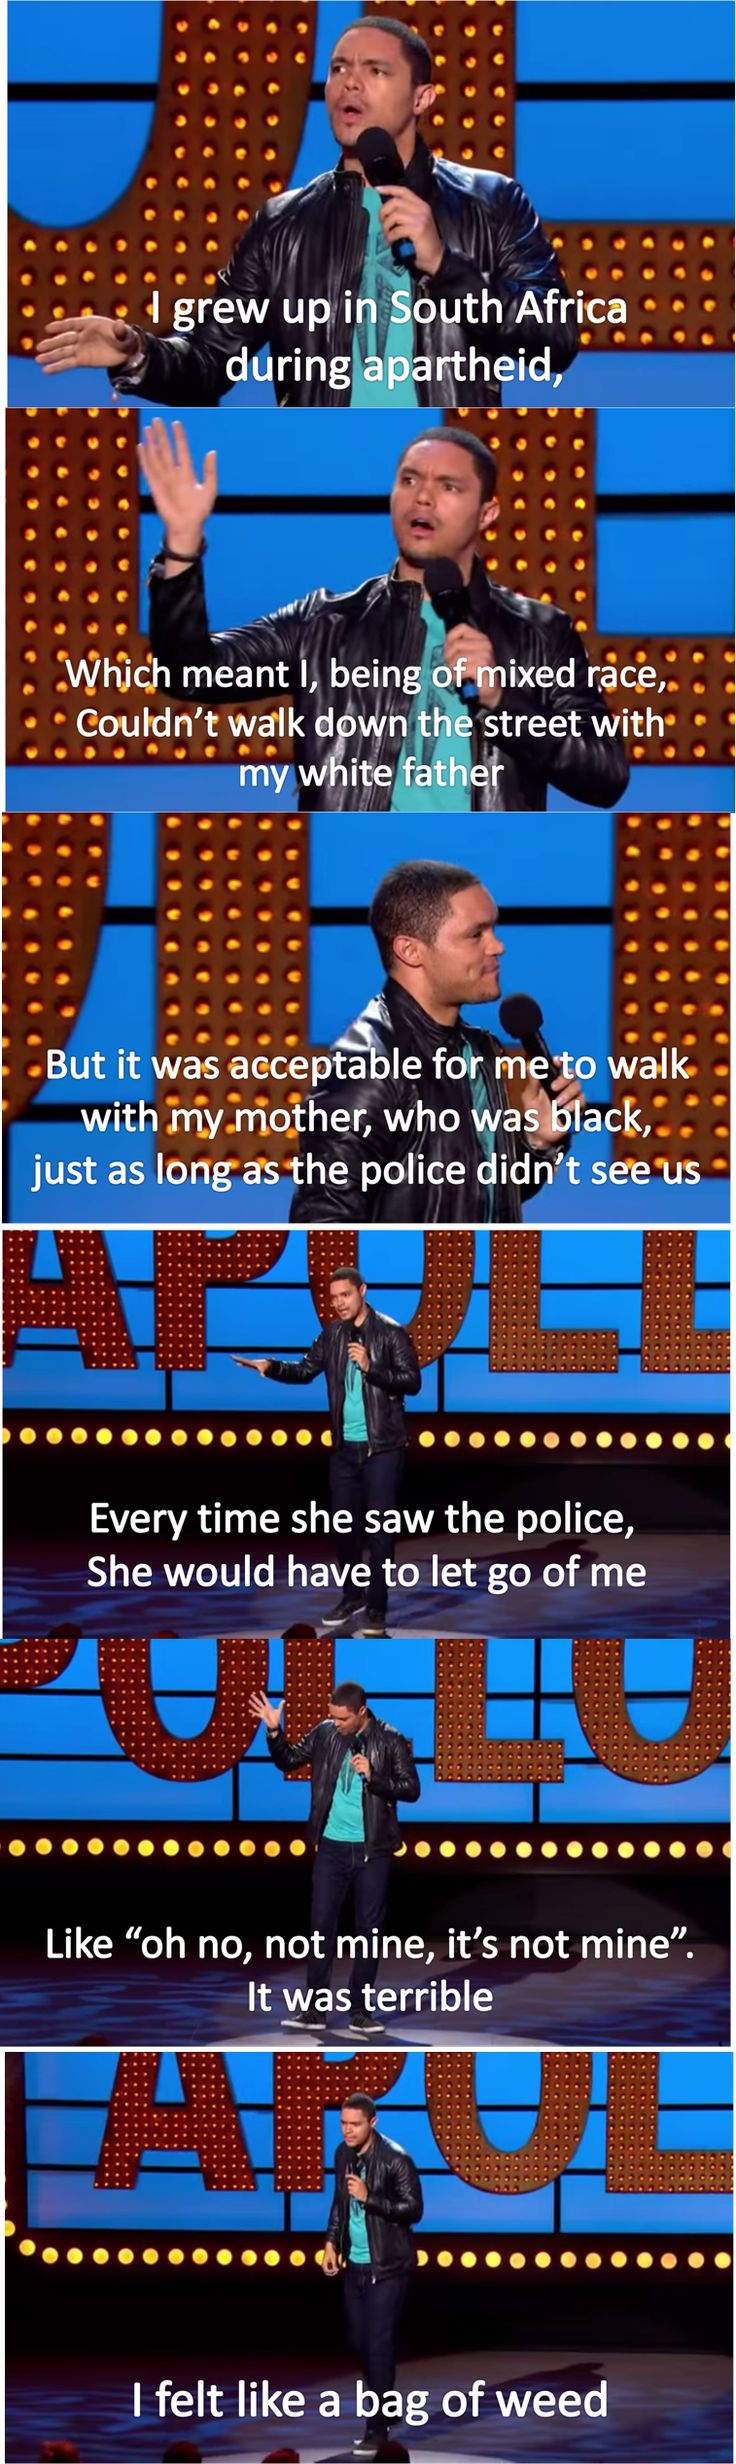 Trevor Noah  // funny pictures - funny photos - funny images - funny pics - funny quotes - #lol #humor #funnypictures